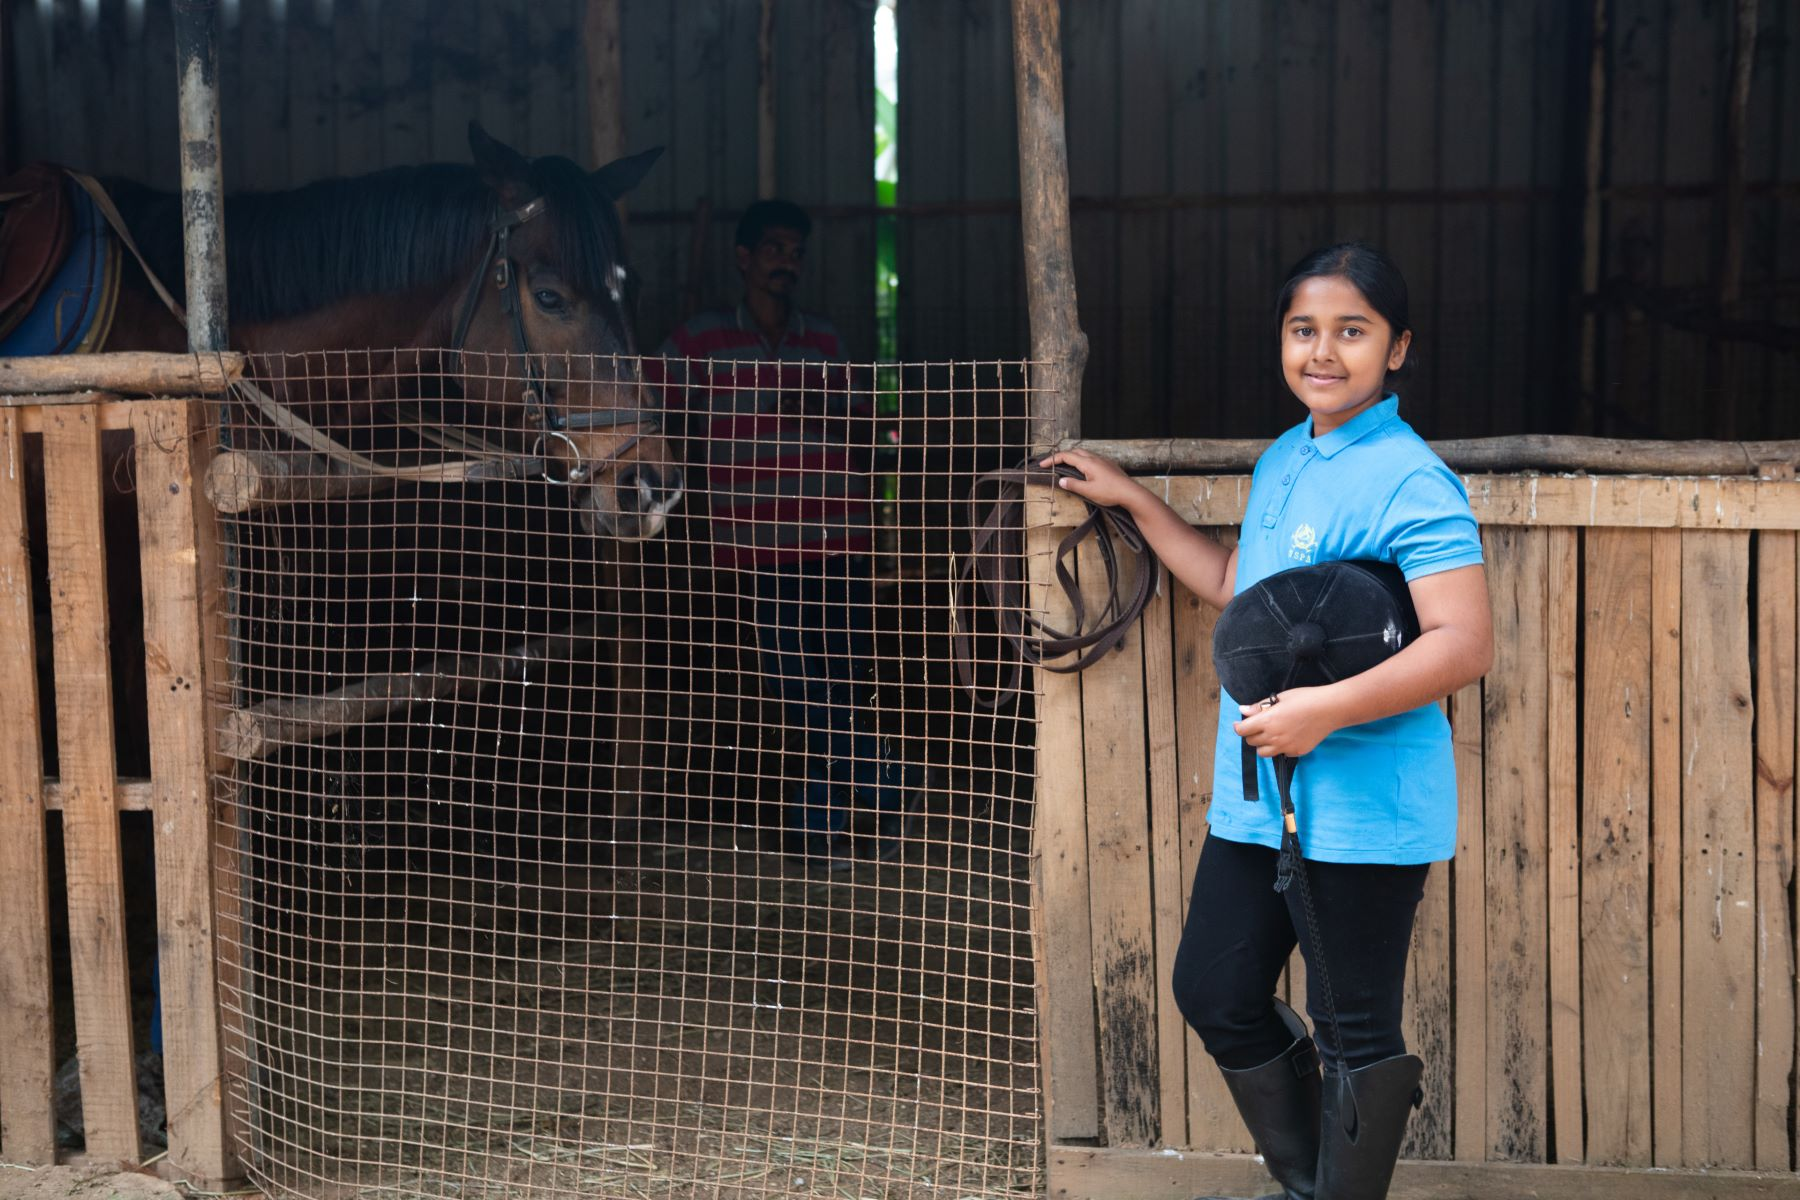 Simhasthita Singh gets Thunder ready for her riding lessons